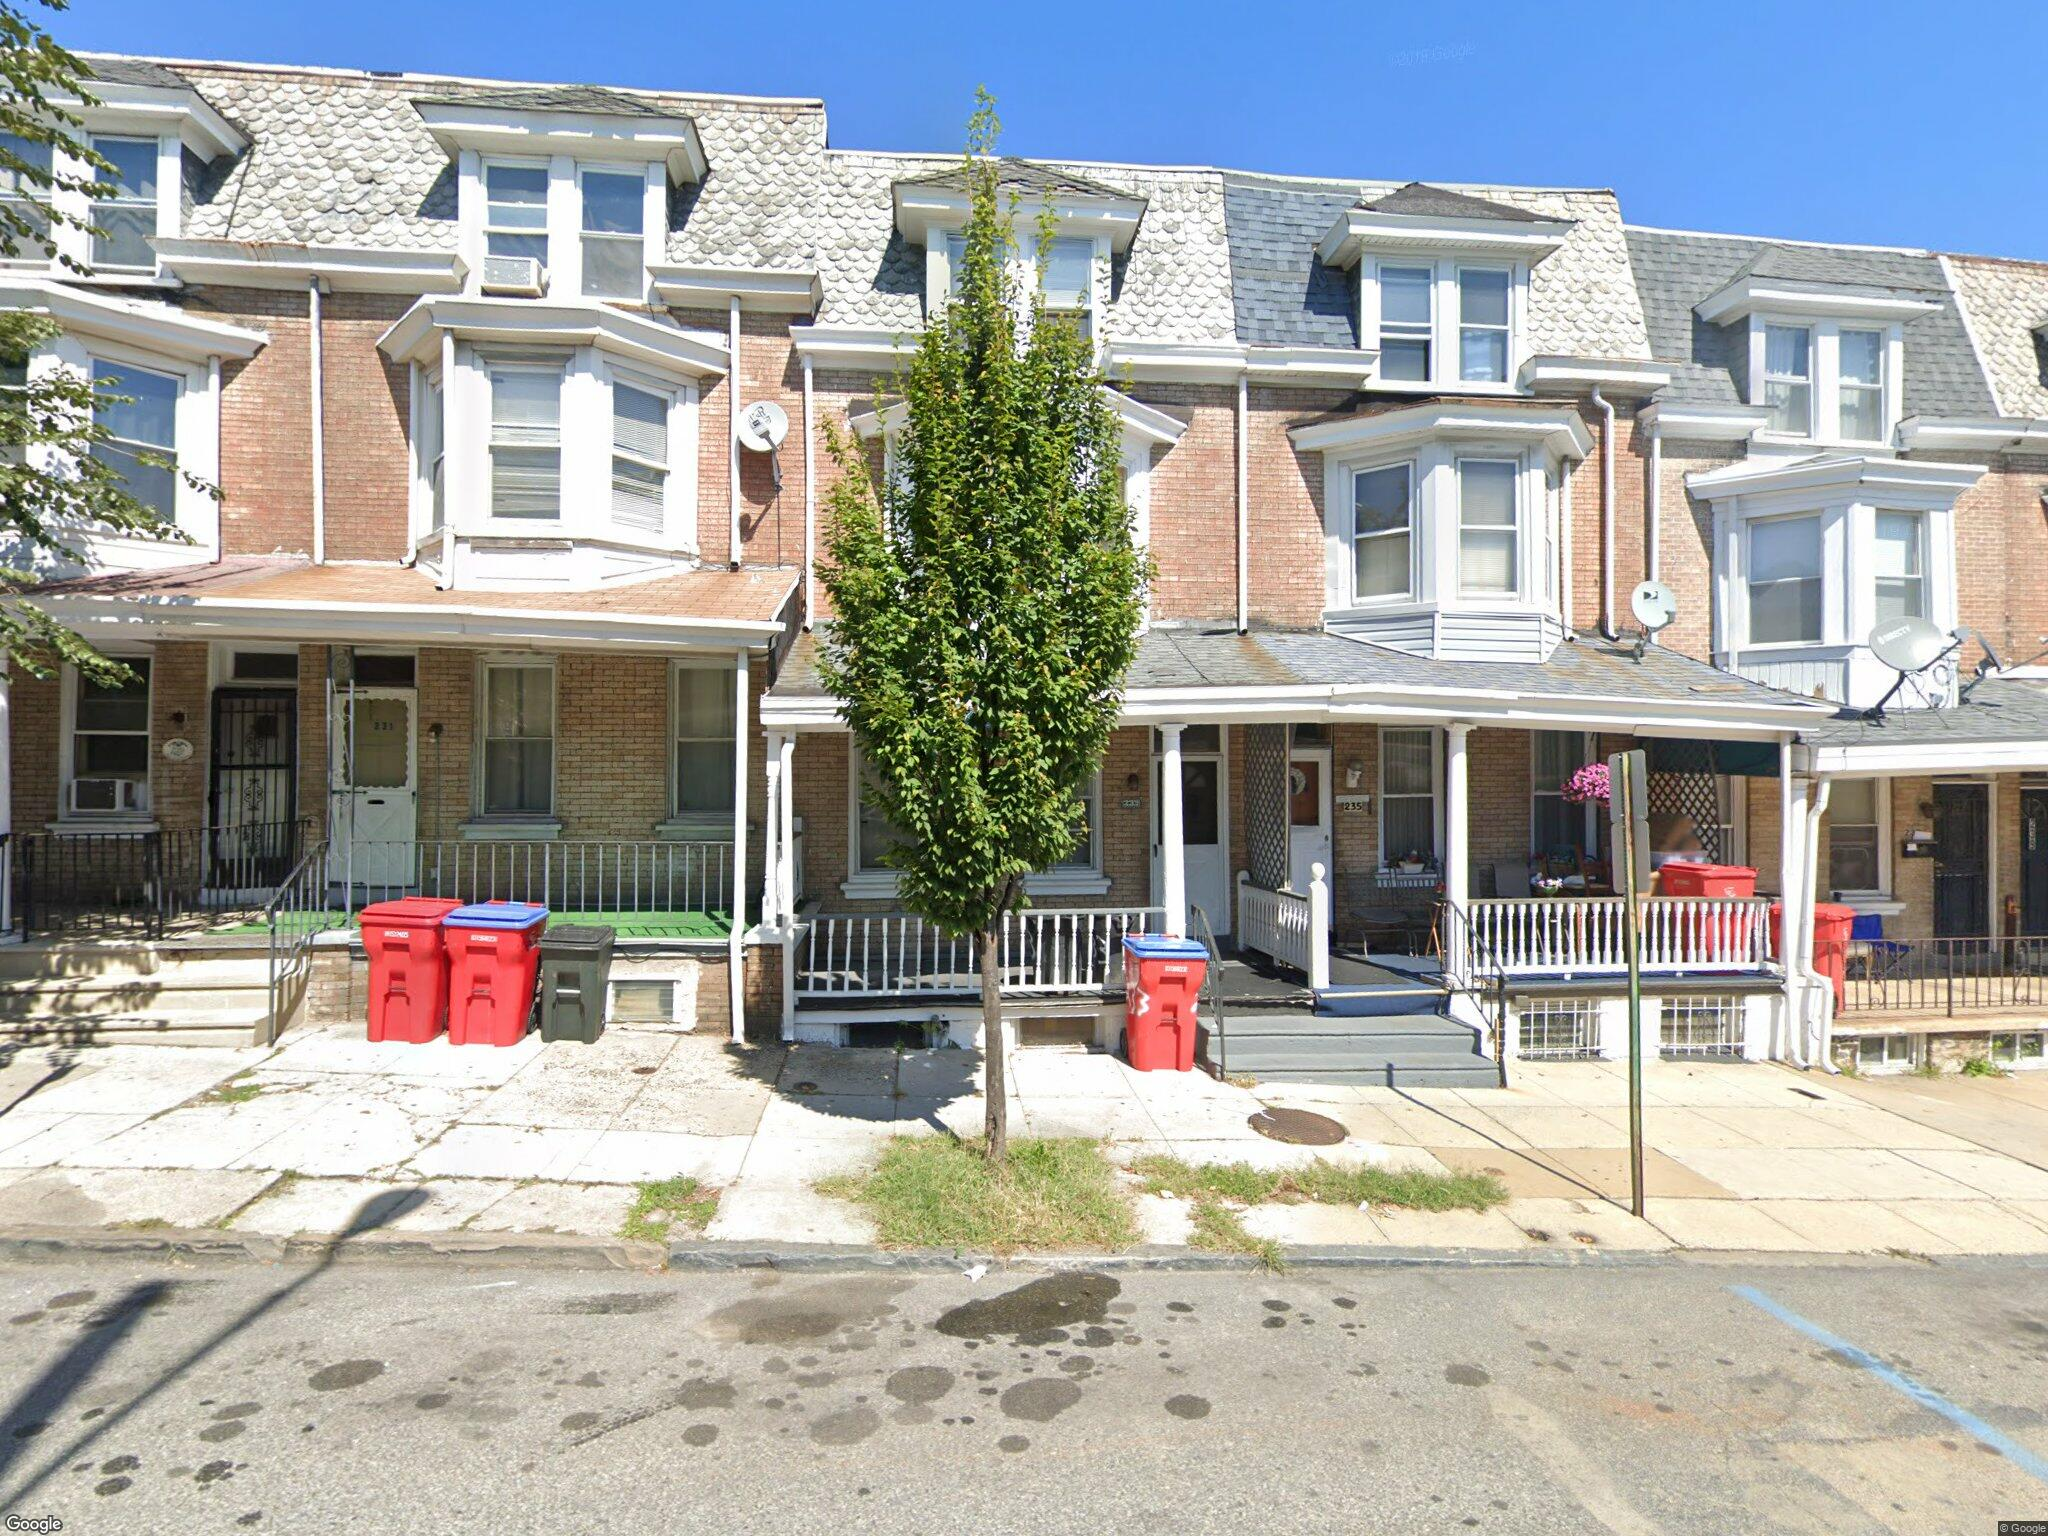 Norristown Pa Zip Code Map.233 E Marshall St Norristown Pa 19401 Foreclosure Trulia